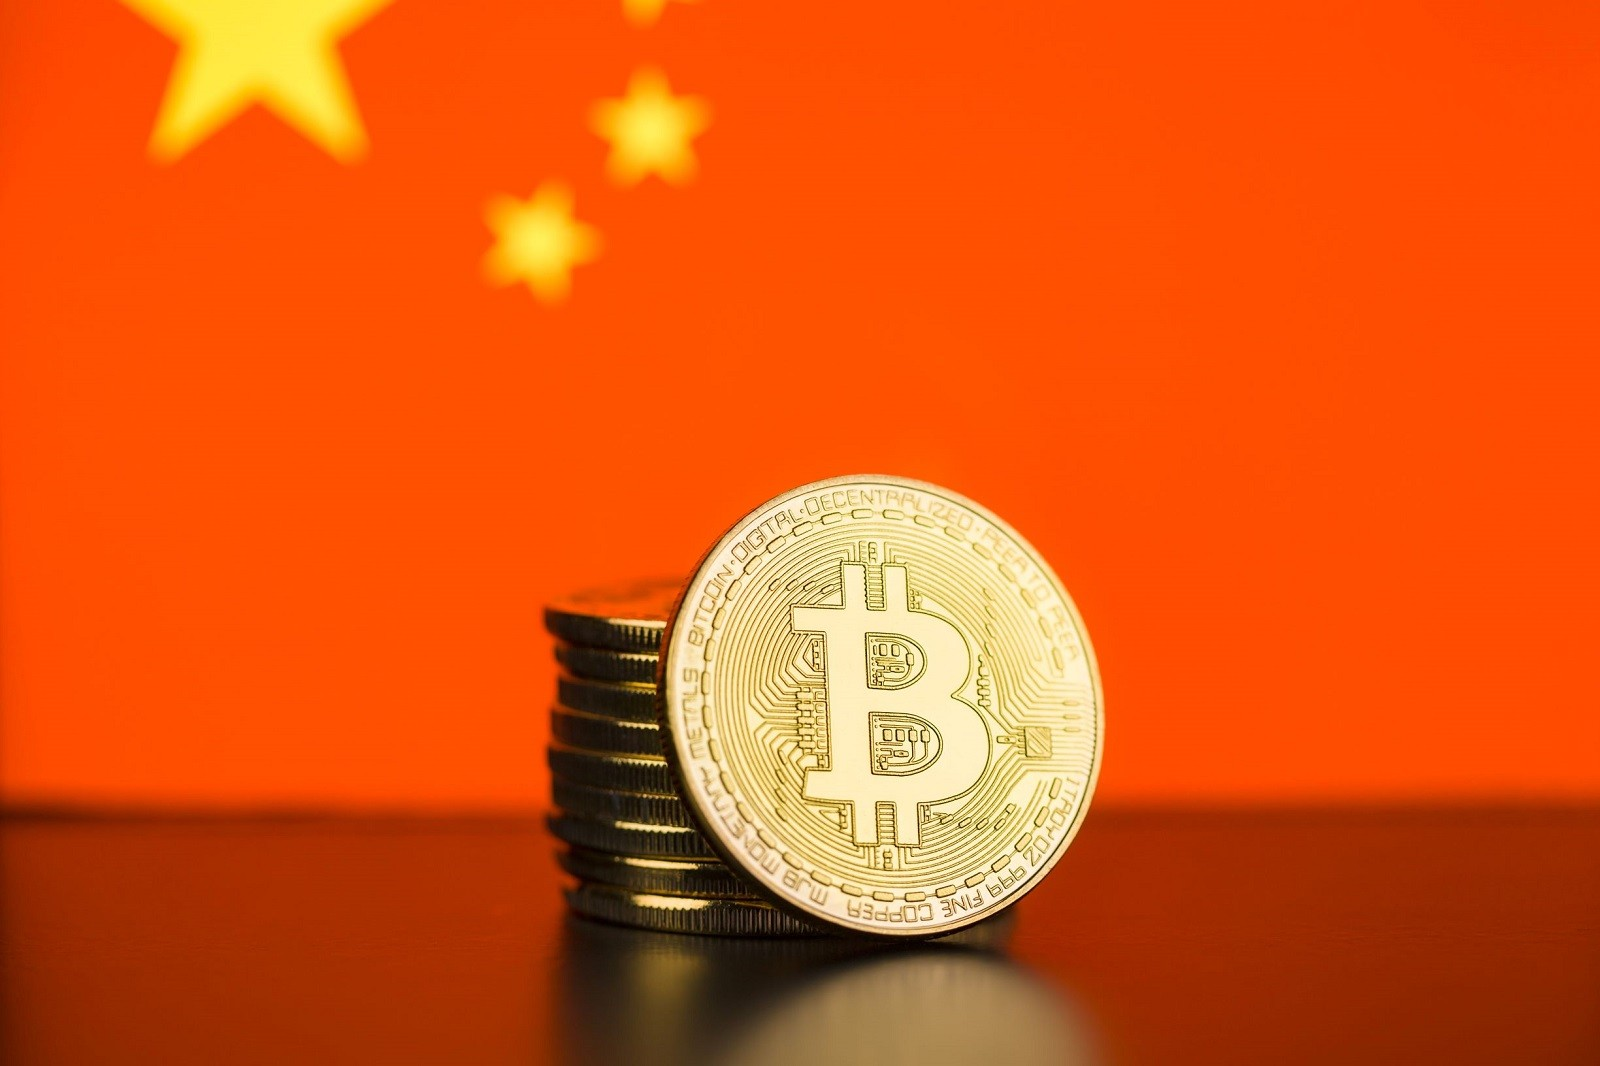 China Cyptocurrency news